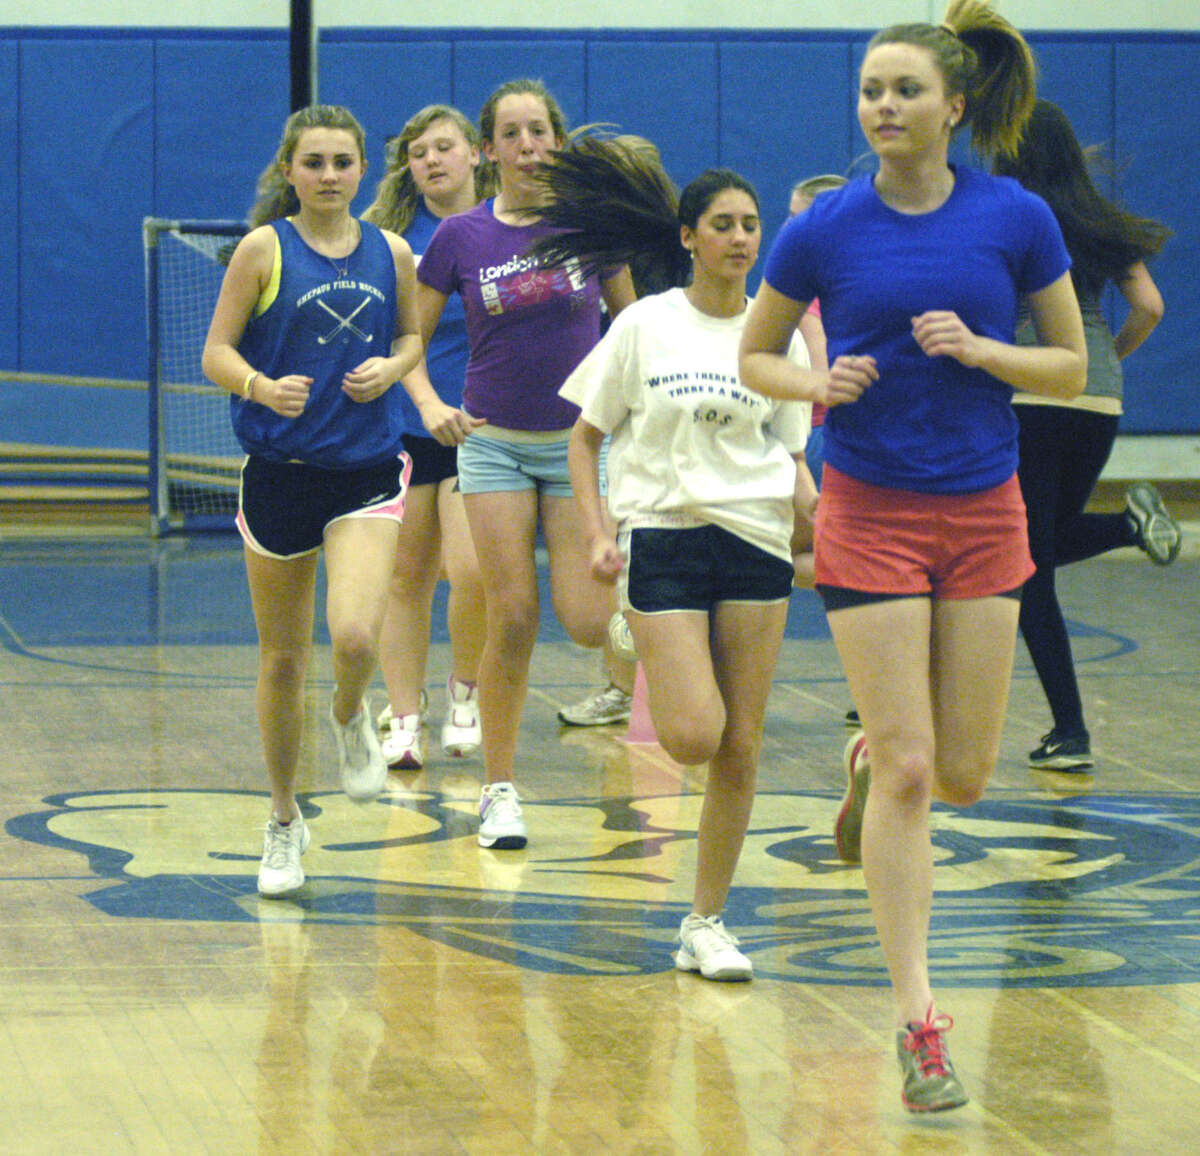 Emma Landegren leads the Spartans as they do a quick lap to warm up for indoor practice for the Shepaug Valley High School girls' tennis season. April 2013